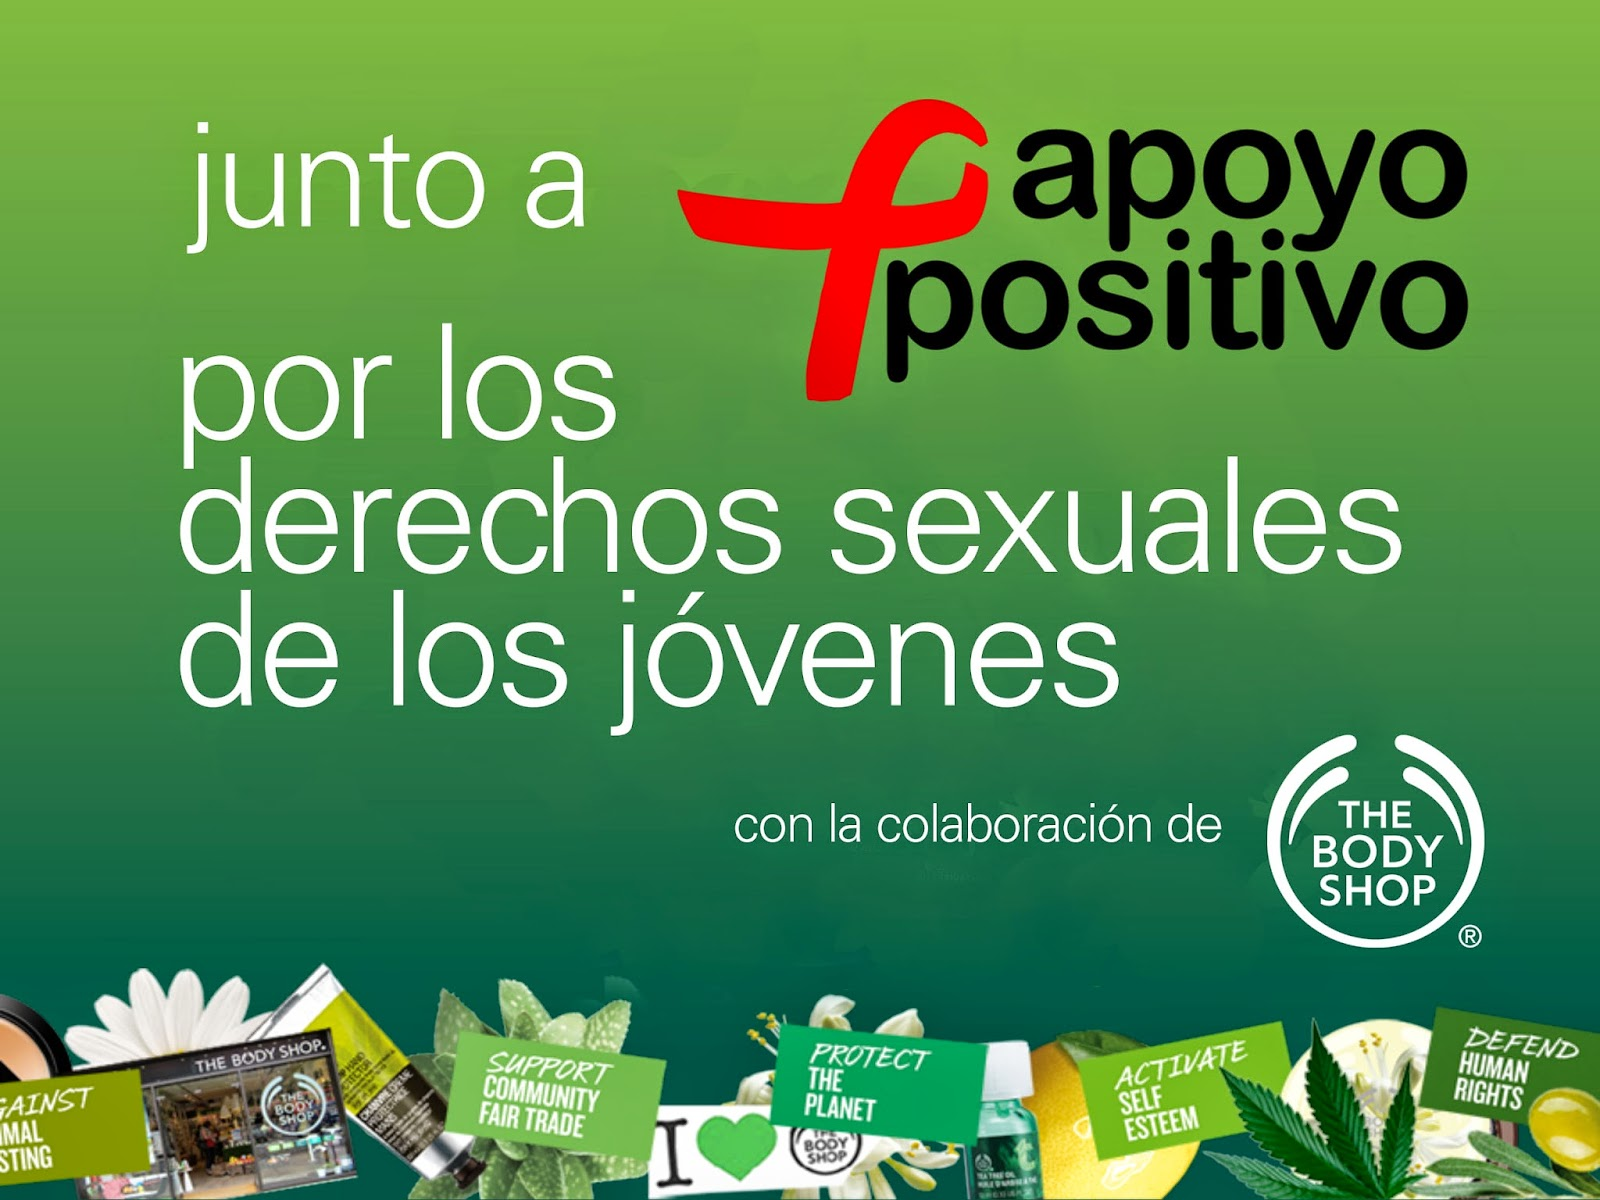 Campaña Apoyo Positivo y The Body Shop